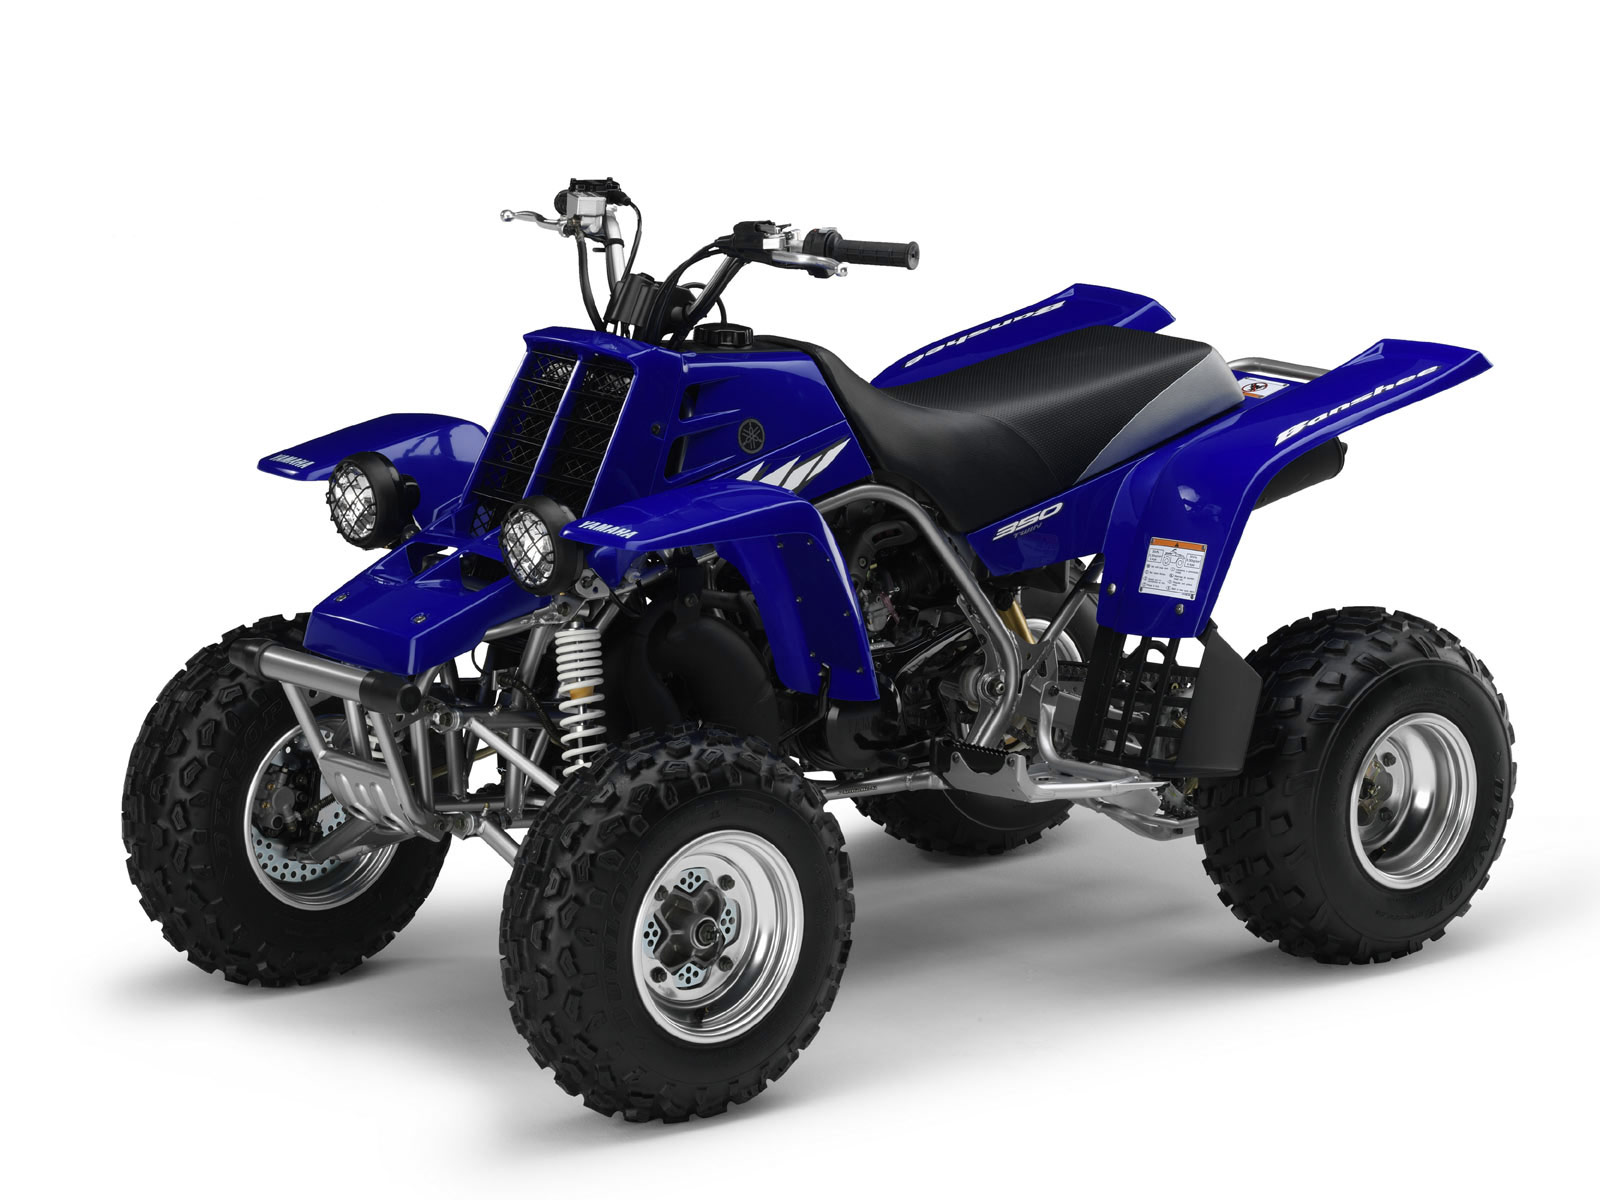 2006 yamaha banshee 350 atv pictures review. Black Bedroom Furniture Sets. Home Design Ideas